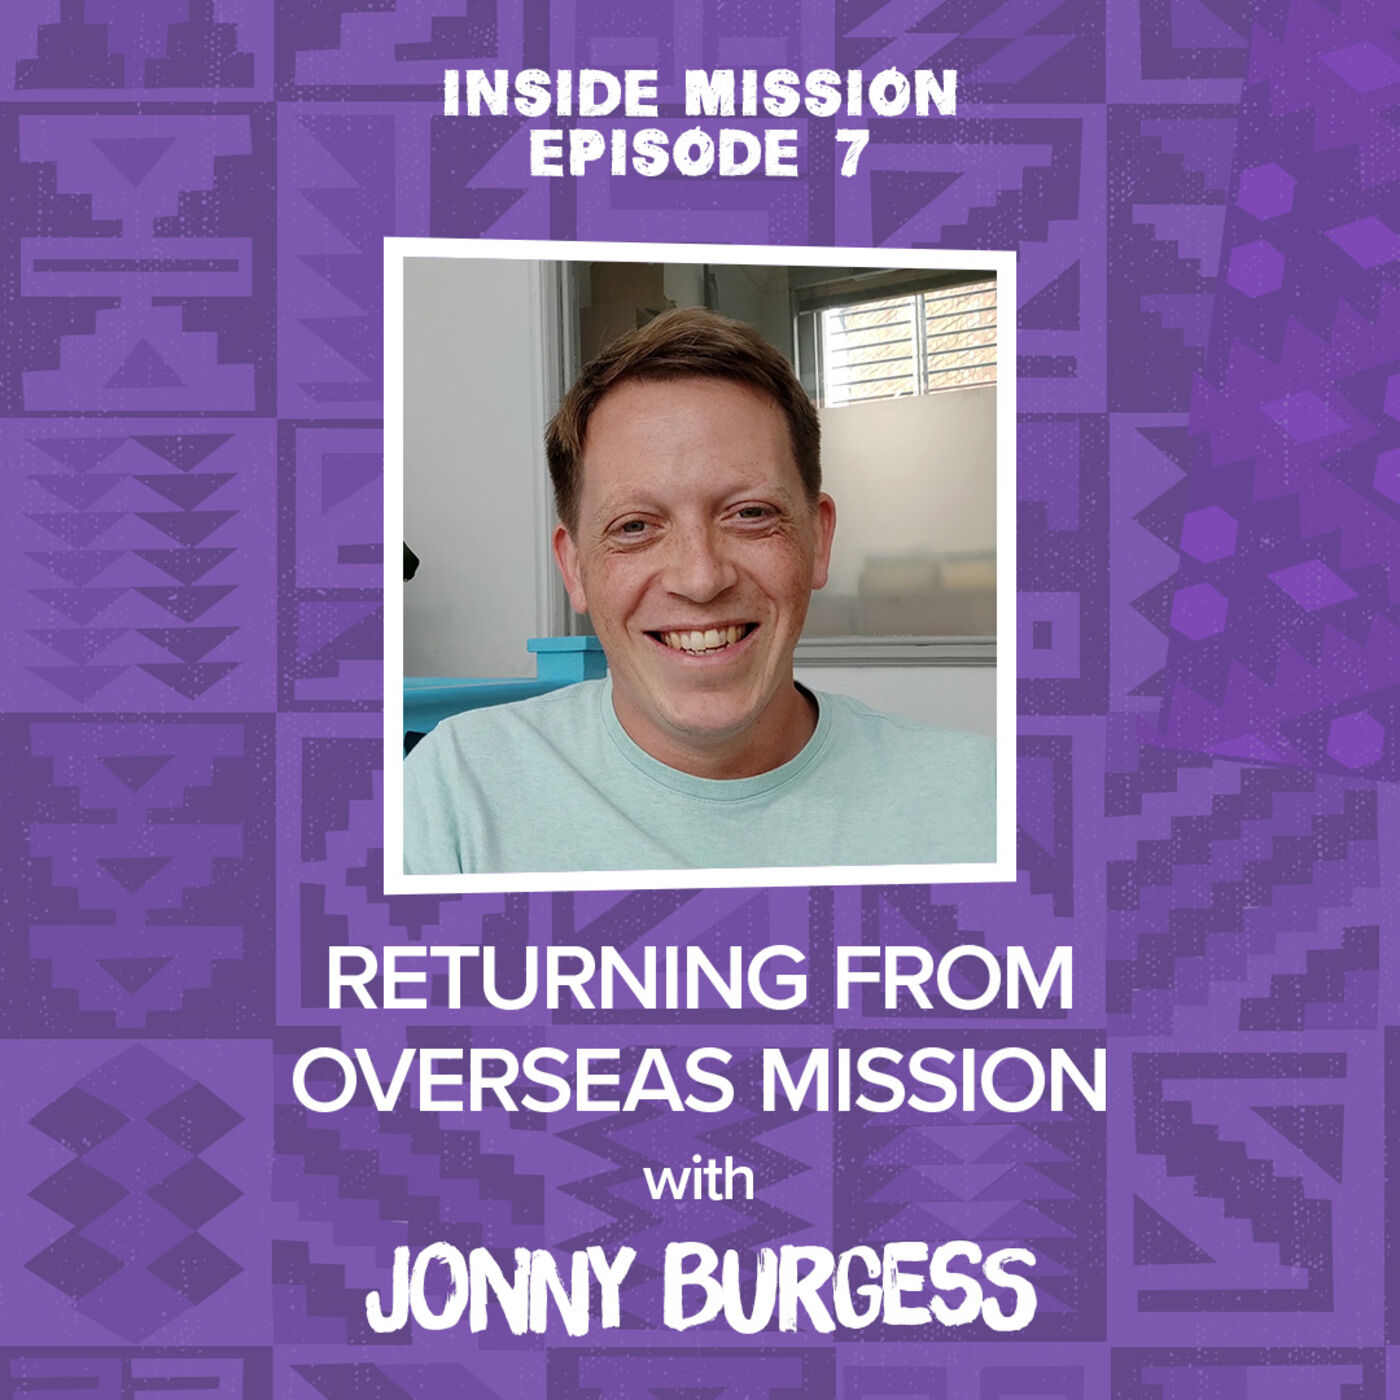 The hardest part of being a missionary – returning home? with Jonny Burgess